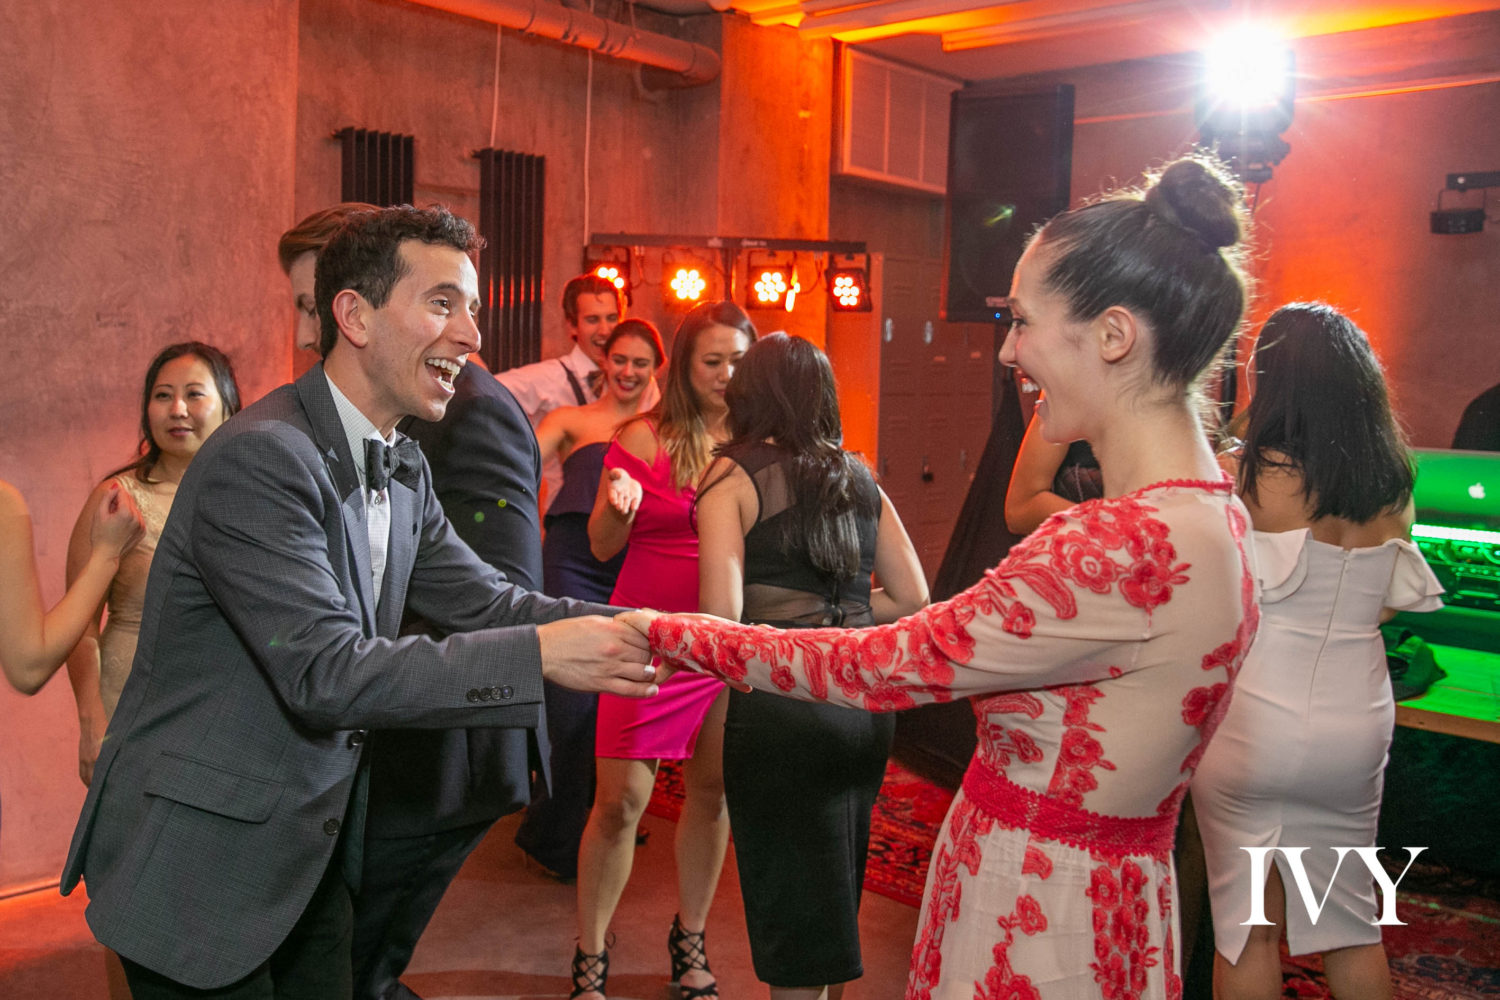 Merrill celebrates the joy of dancing at the IVY Winter Gala with her boyfriend Sam Kahane.